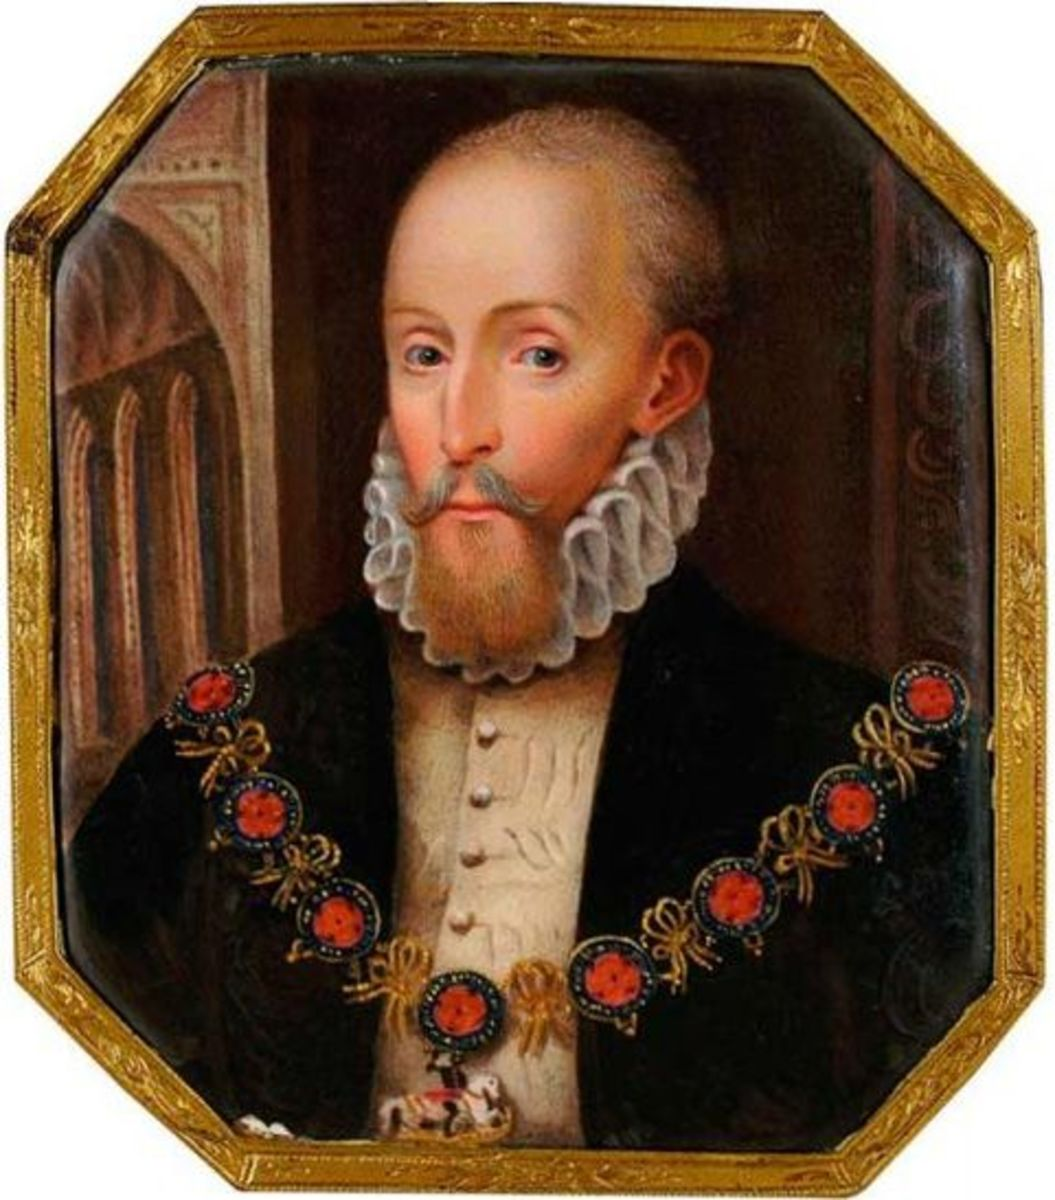 Henry Carey, Give this man a shave, put him in Elizabeth I 's wig and dress... Is this Elizabeth's brother?